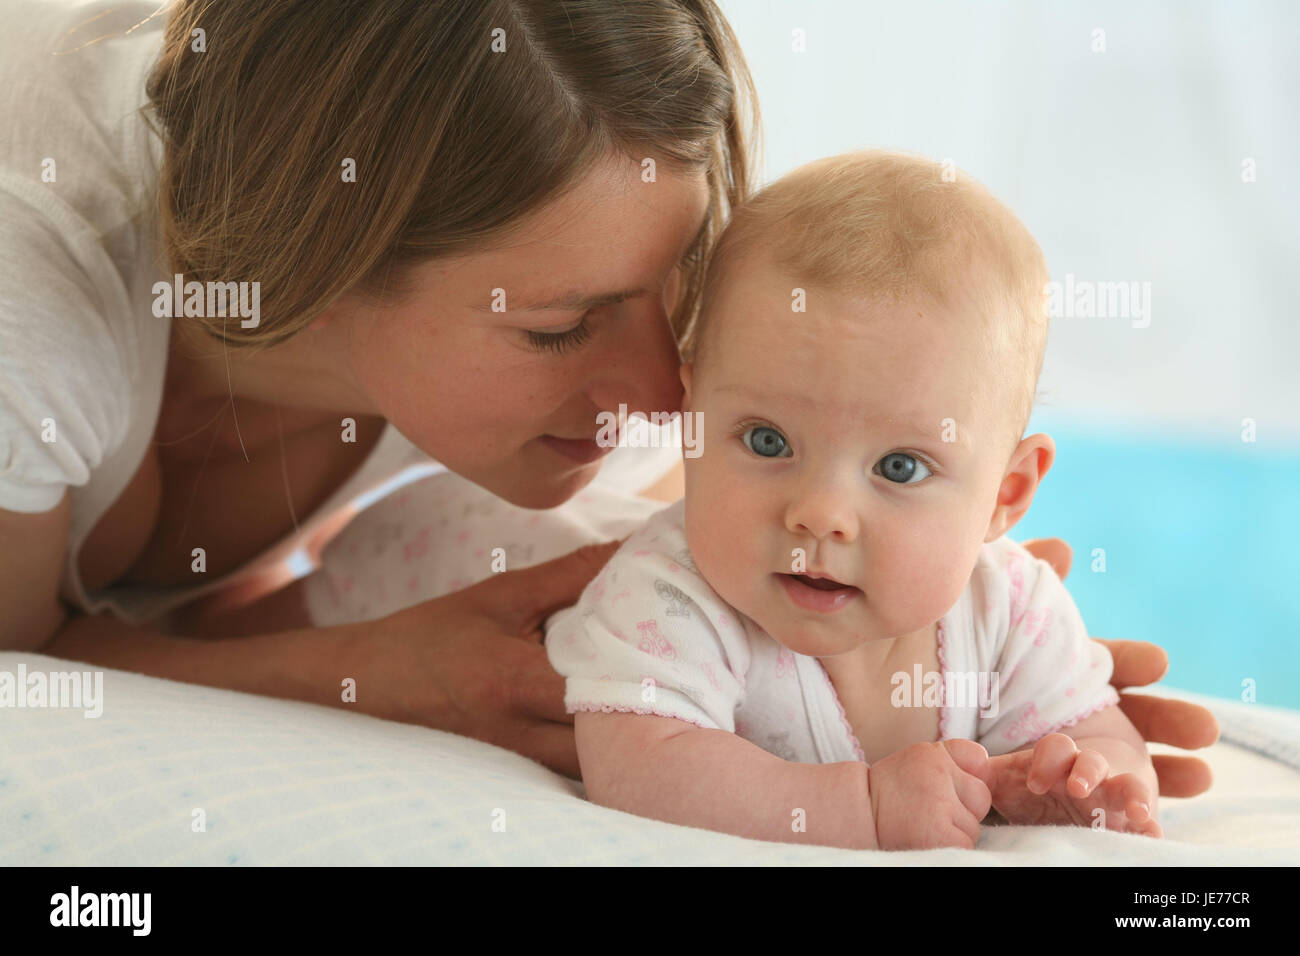 Nut, baby, 4 months, cuddle, dresses, Indoor, girl, person, woman, suture, touch, portrait, curled, happily, tenderness, - Stock Image